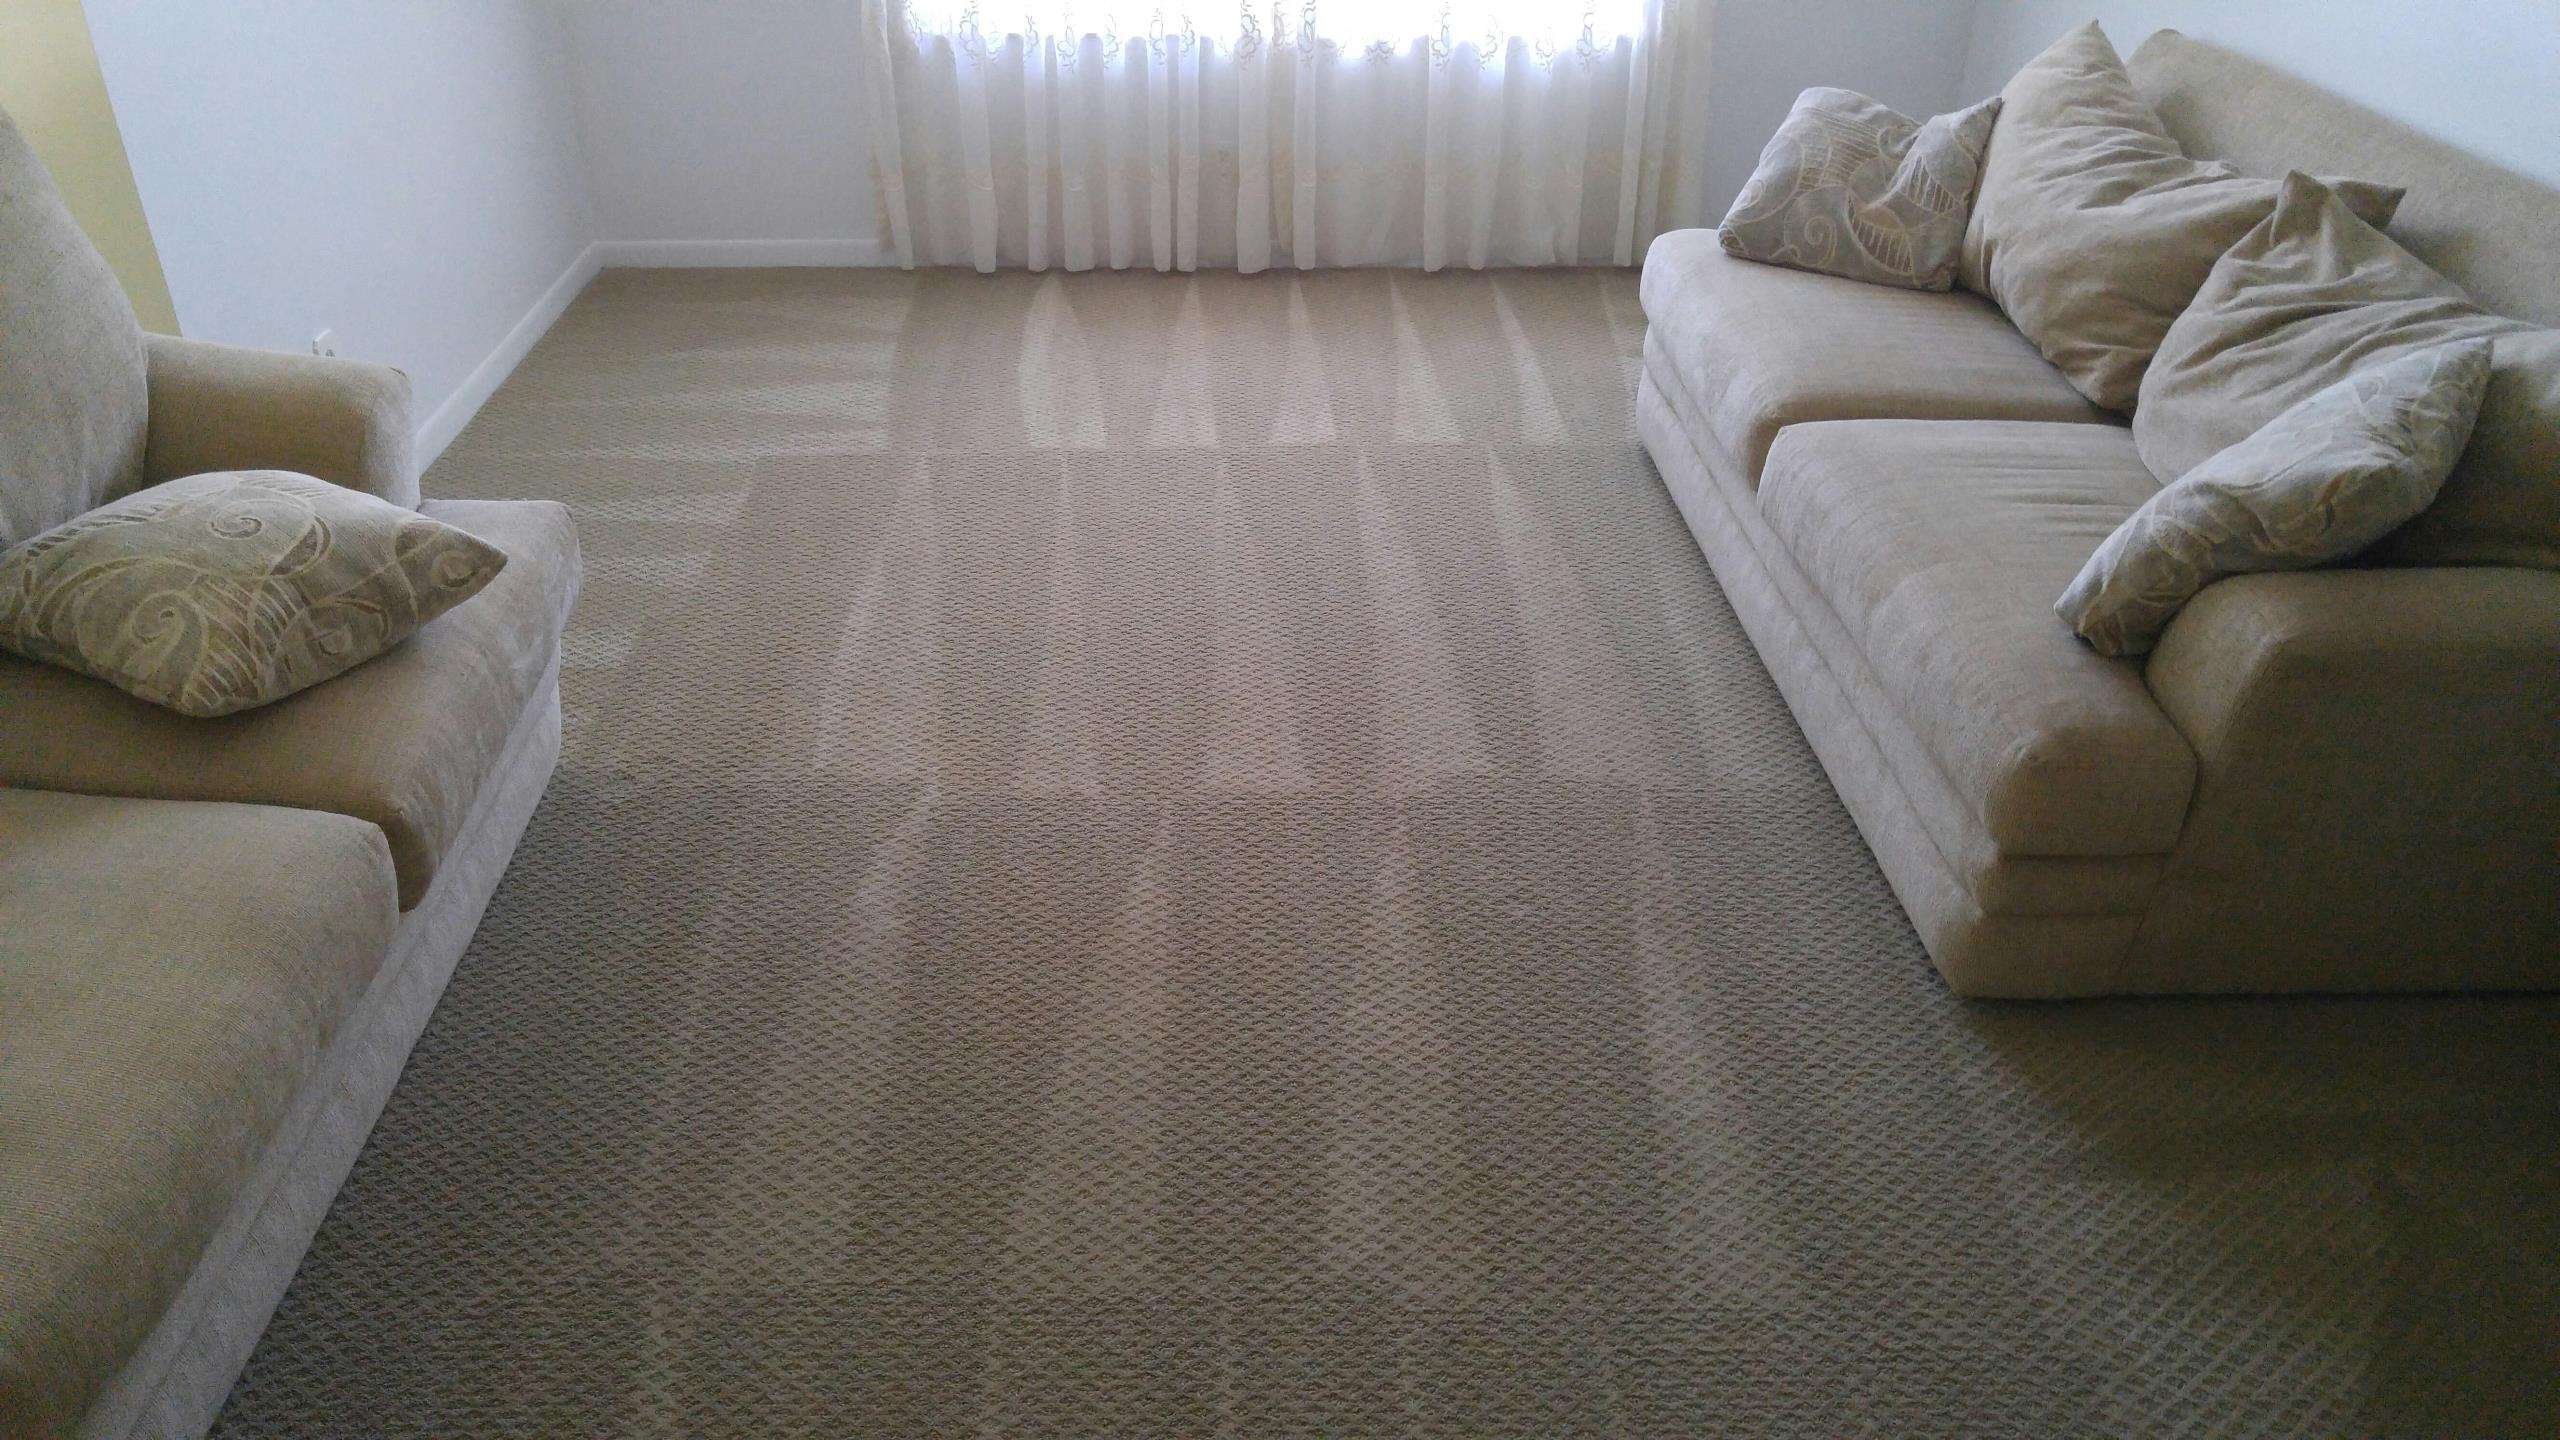 Coral Springs, FL - 1 room carpet cleaning Coral Springs